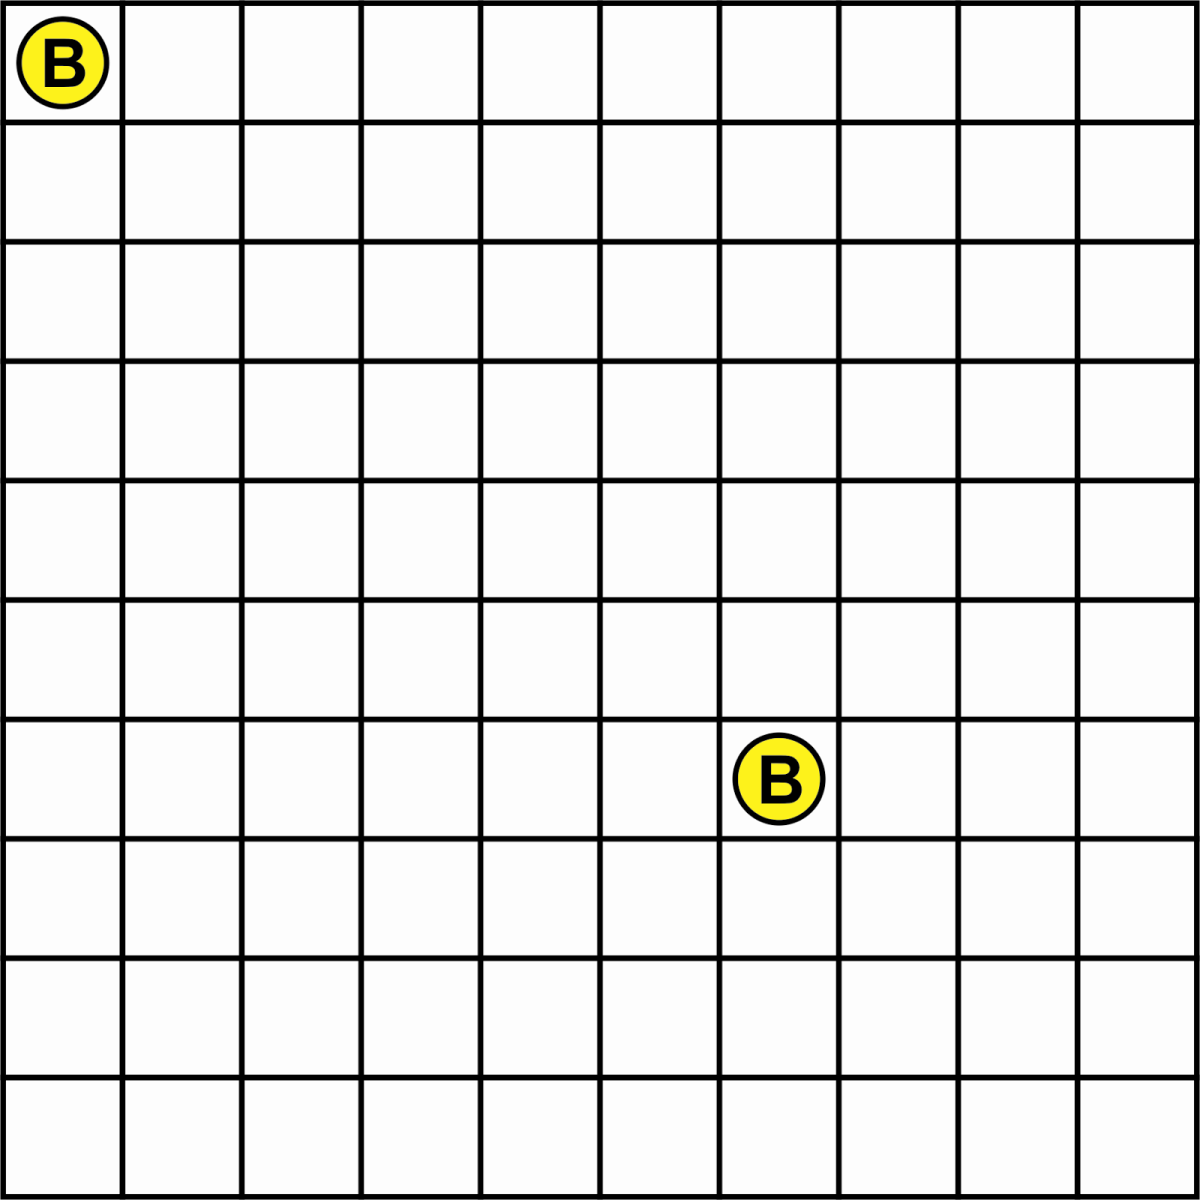 Figure 4: the first player draws two coins